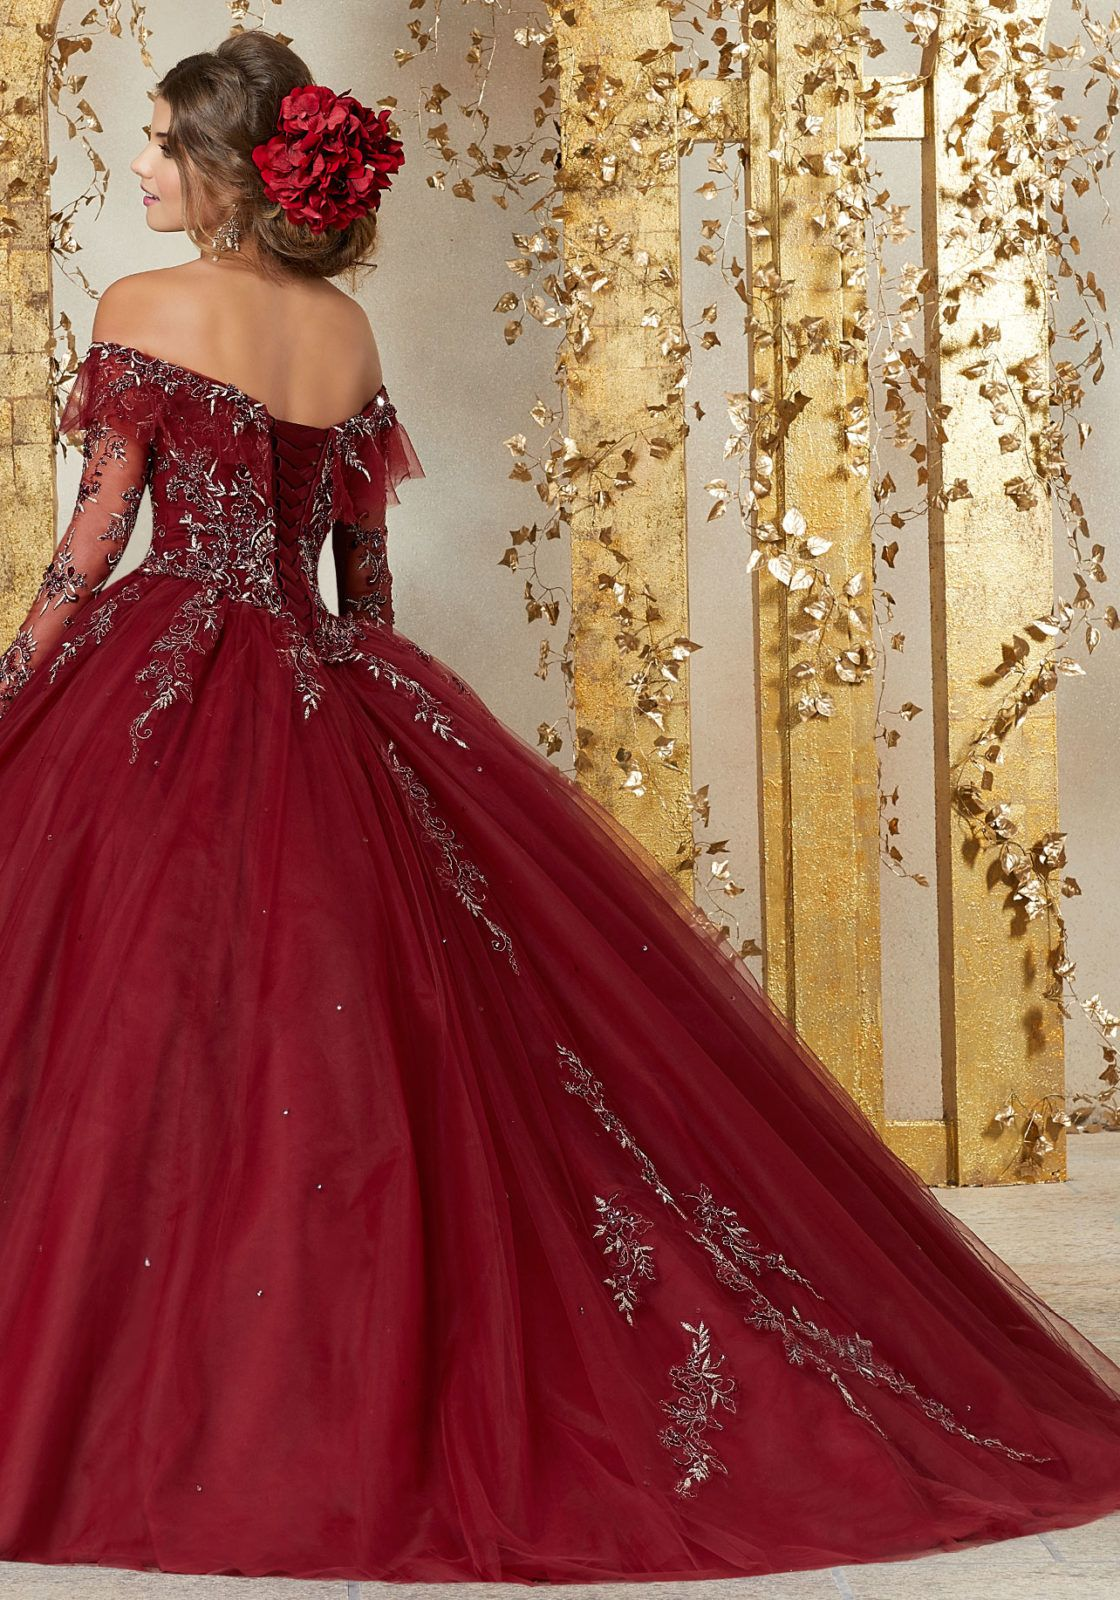 Style 89235 Dramatic And Elegant This Stunning Long Sleeve Quinceanera Dress Long Sleeve Quinceanera Dresses Burgundy Quinceanera Dresses Red Wedding Dresses